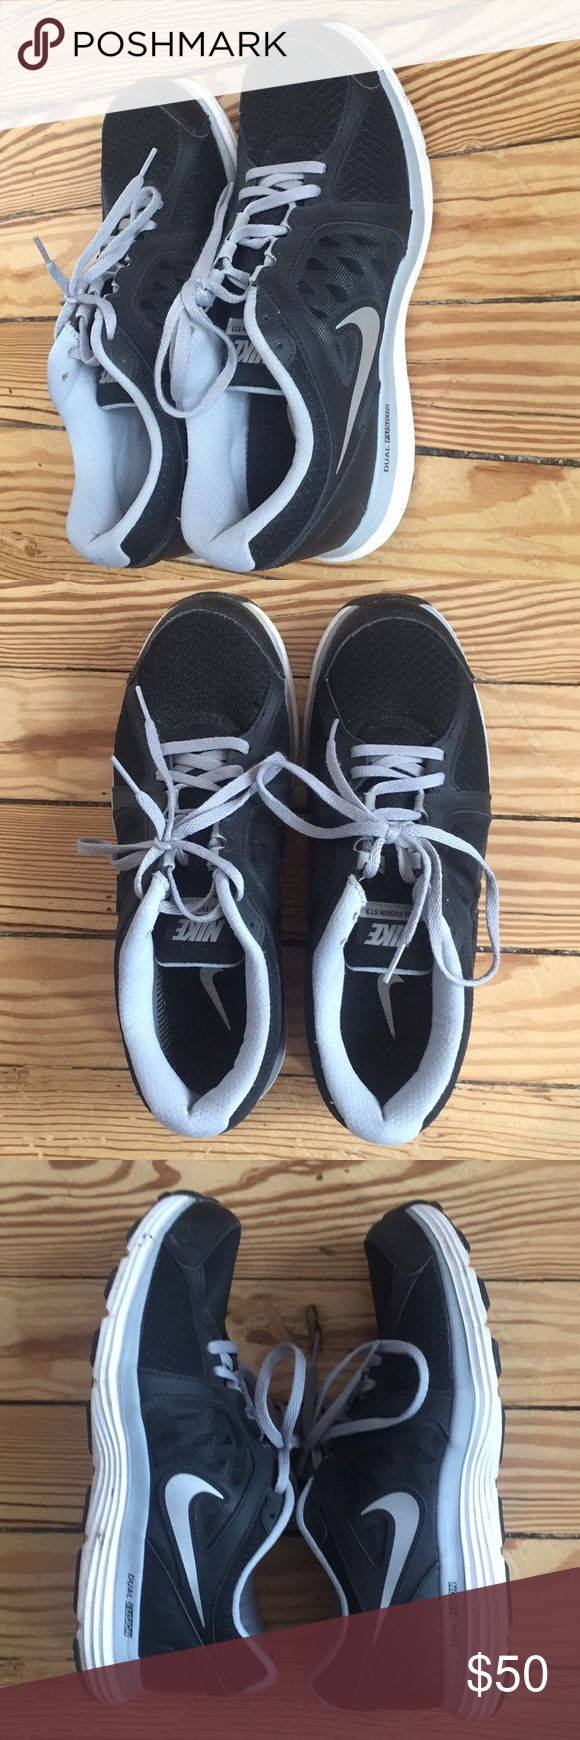 Nike Dual Fusion ST3 sneakers women's 10 M Women's Nike Dual Fusion lightweight running shoes, size 10 (US). These are very gently worn and in excellent used condition. Retail price $70 and rated 4.7/5 online. Nike Shoes Sneakers